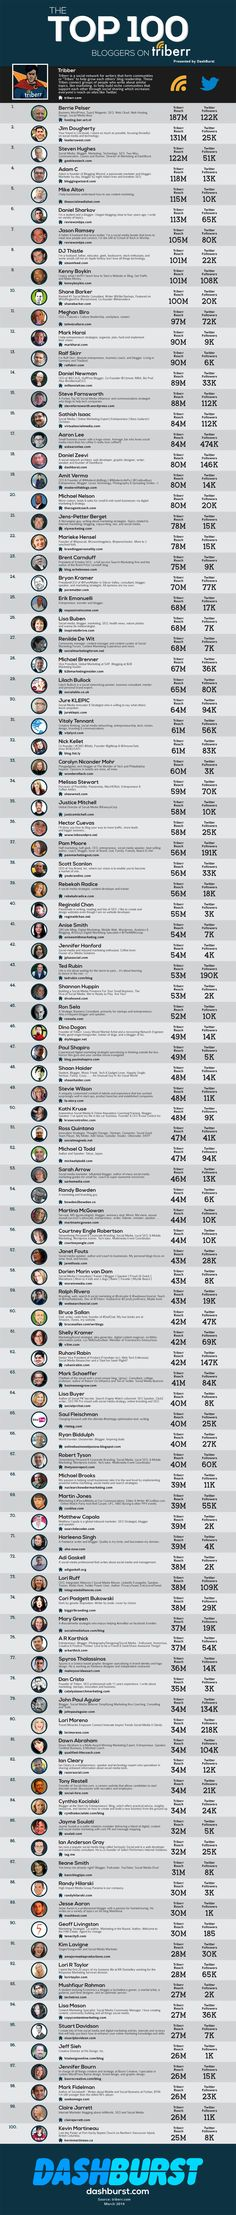 The Top 100 Bloggers on Triberr an infographic